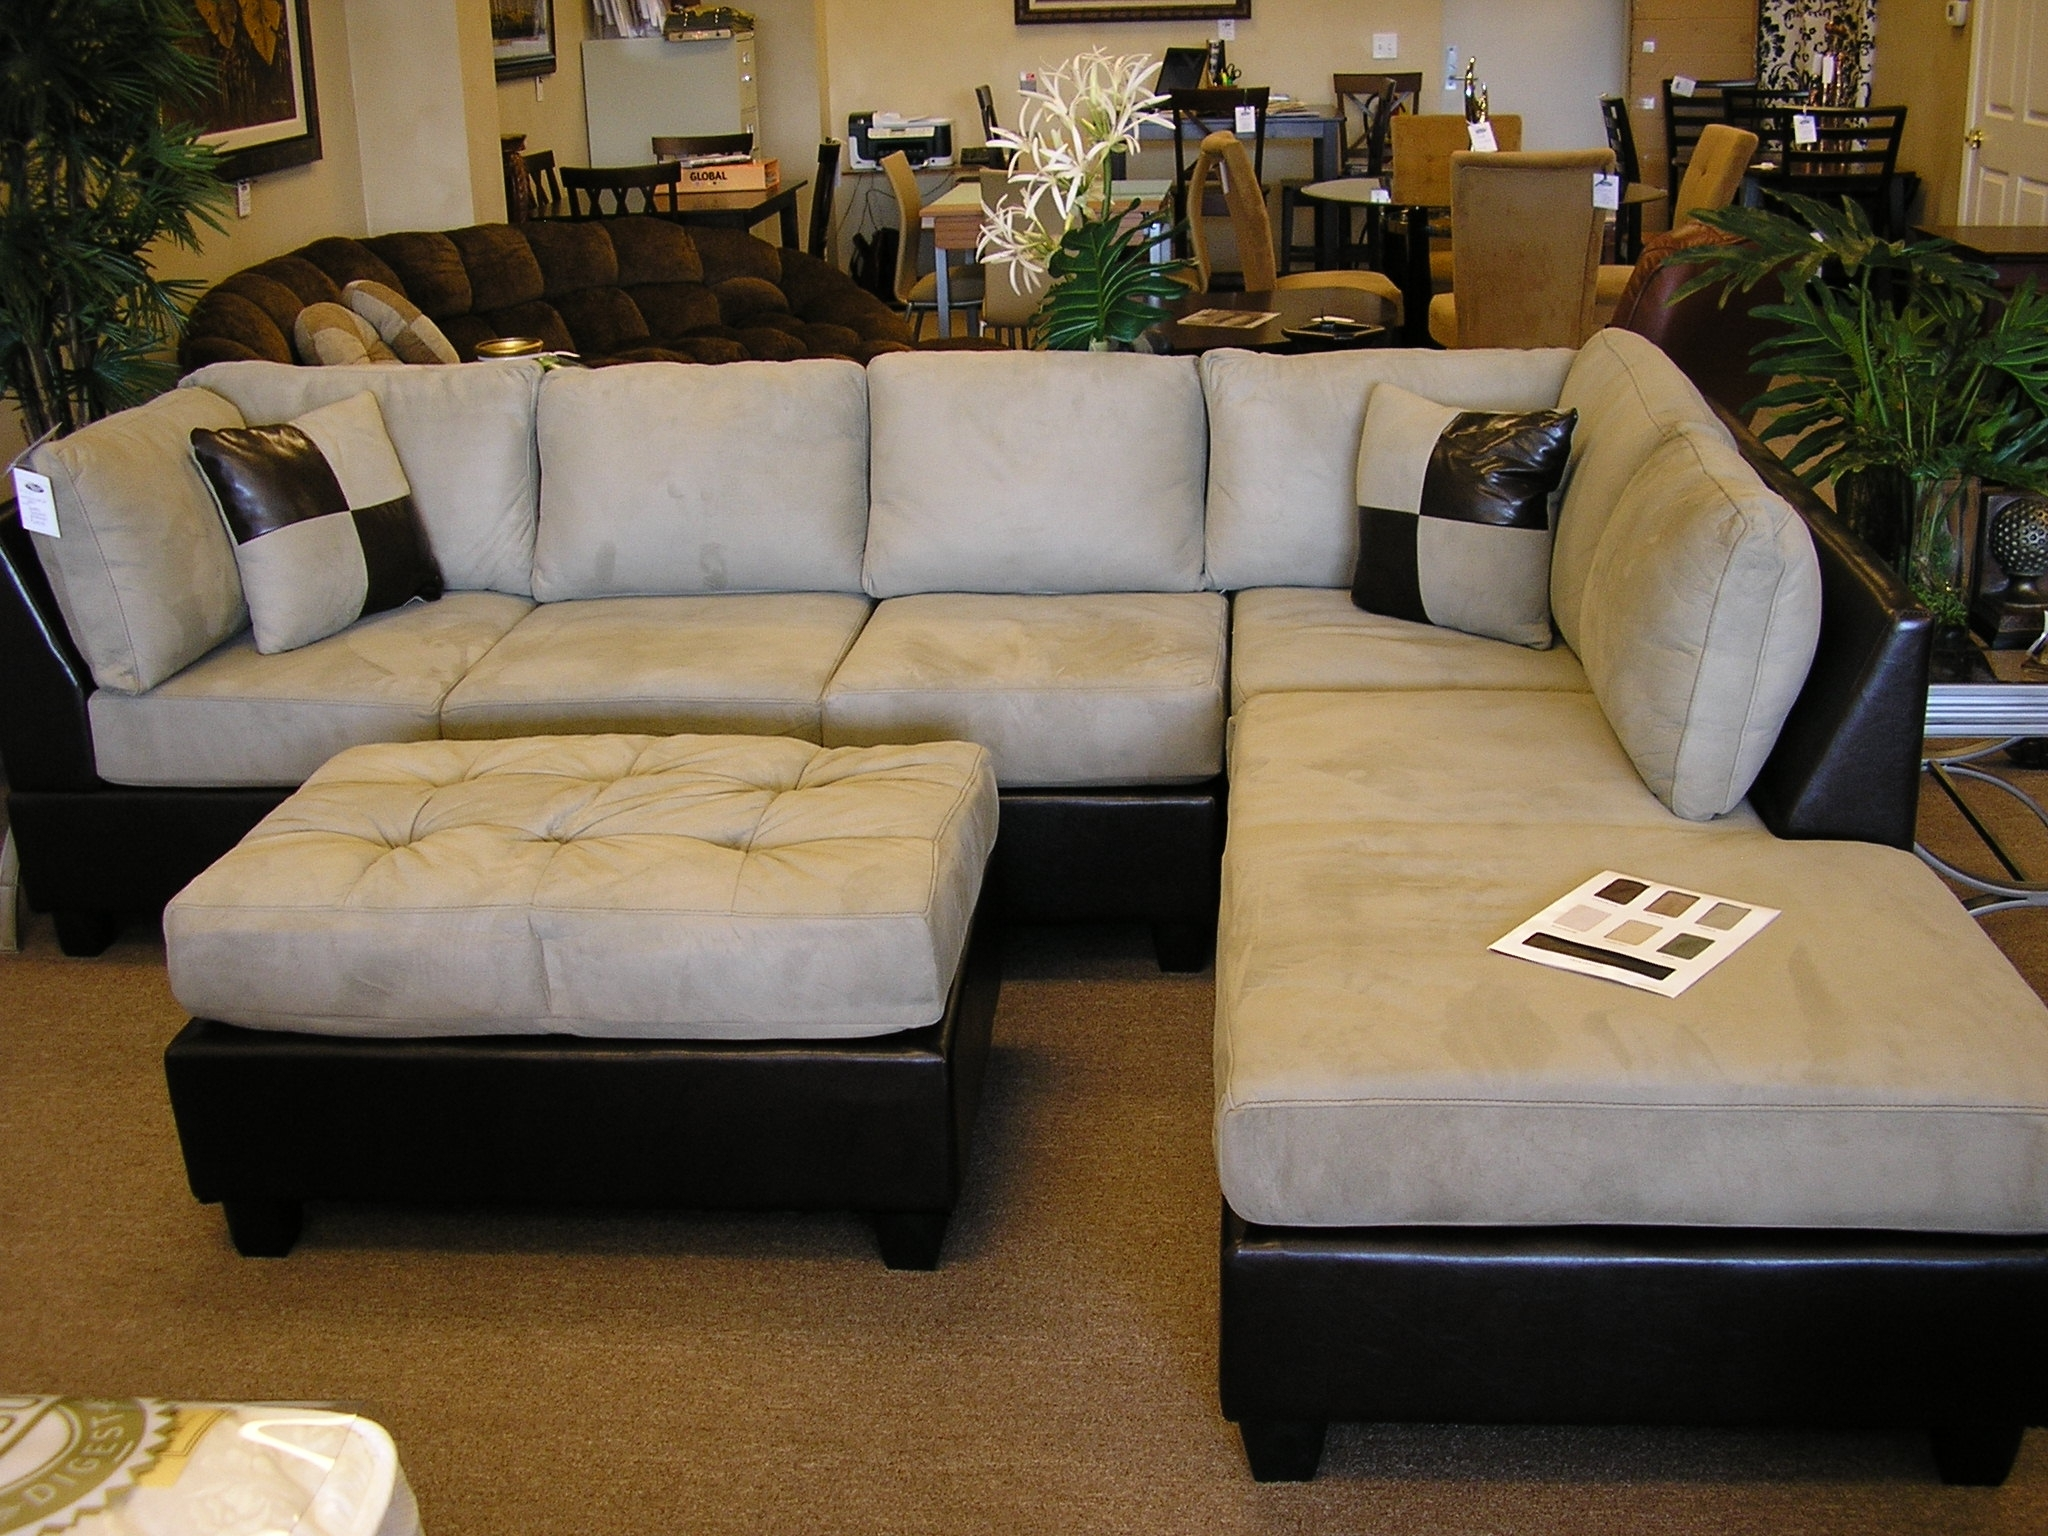 New Sectional Sofa With Chaise And Ottoman 74 On Stretch Slipcovers throughout Sectional Sofas With Chaise And Ottoman